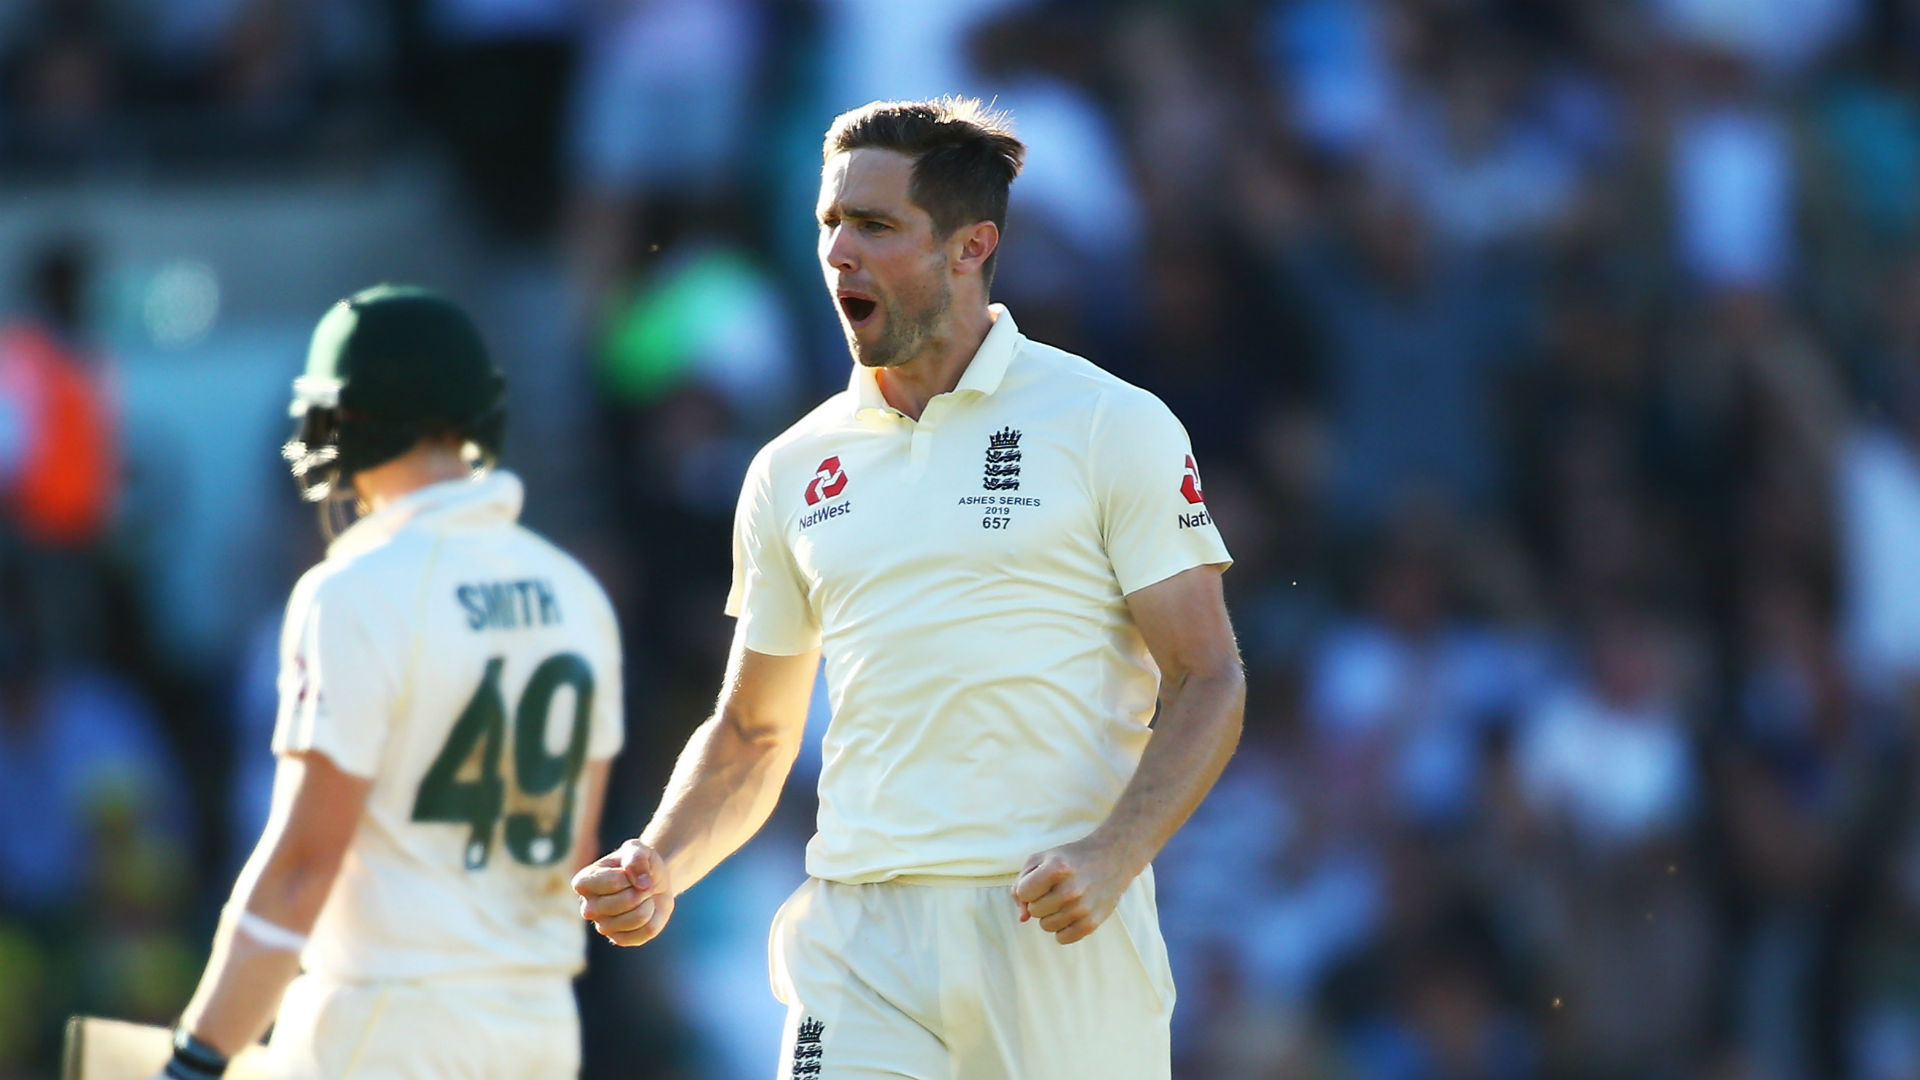 England players unlikely to feature in rescheduled IPL